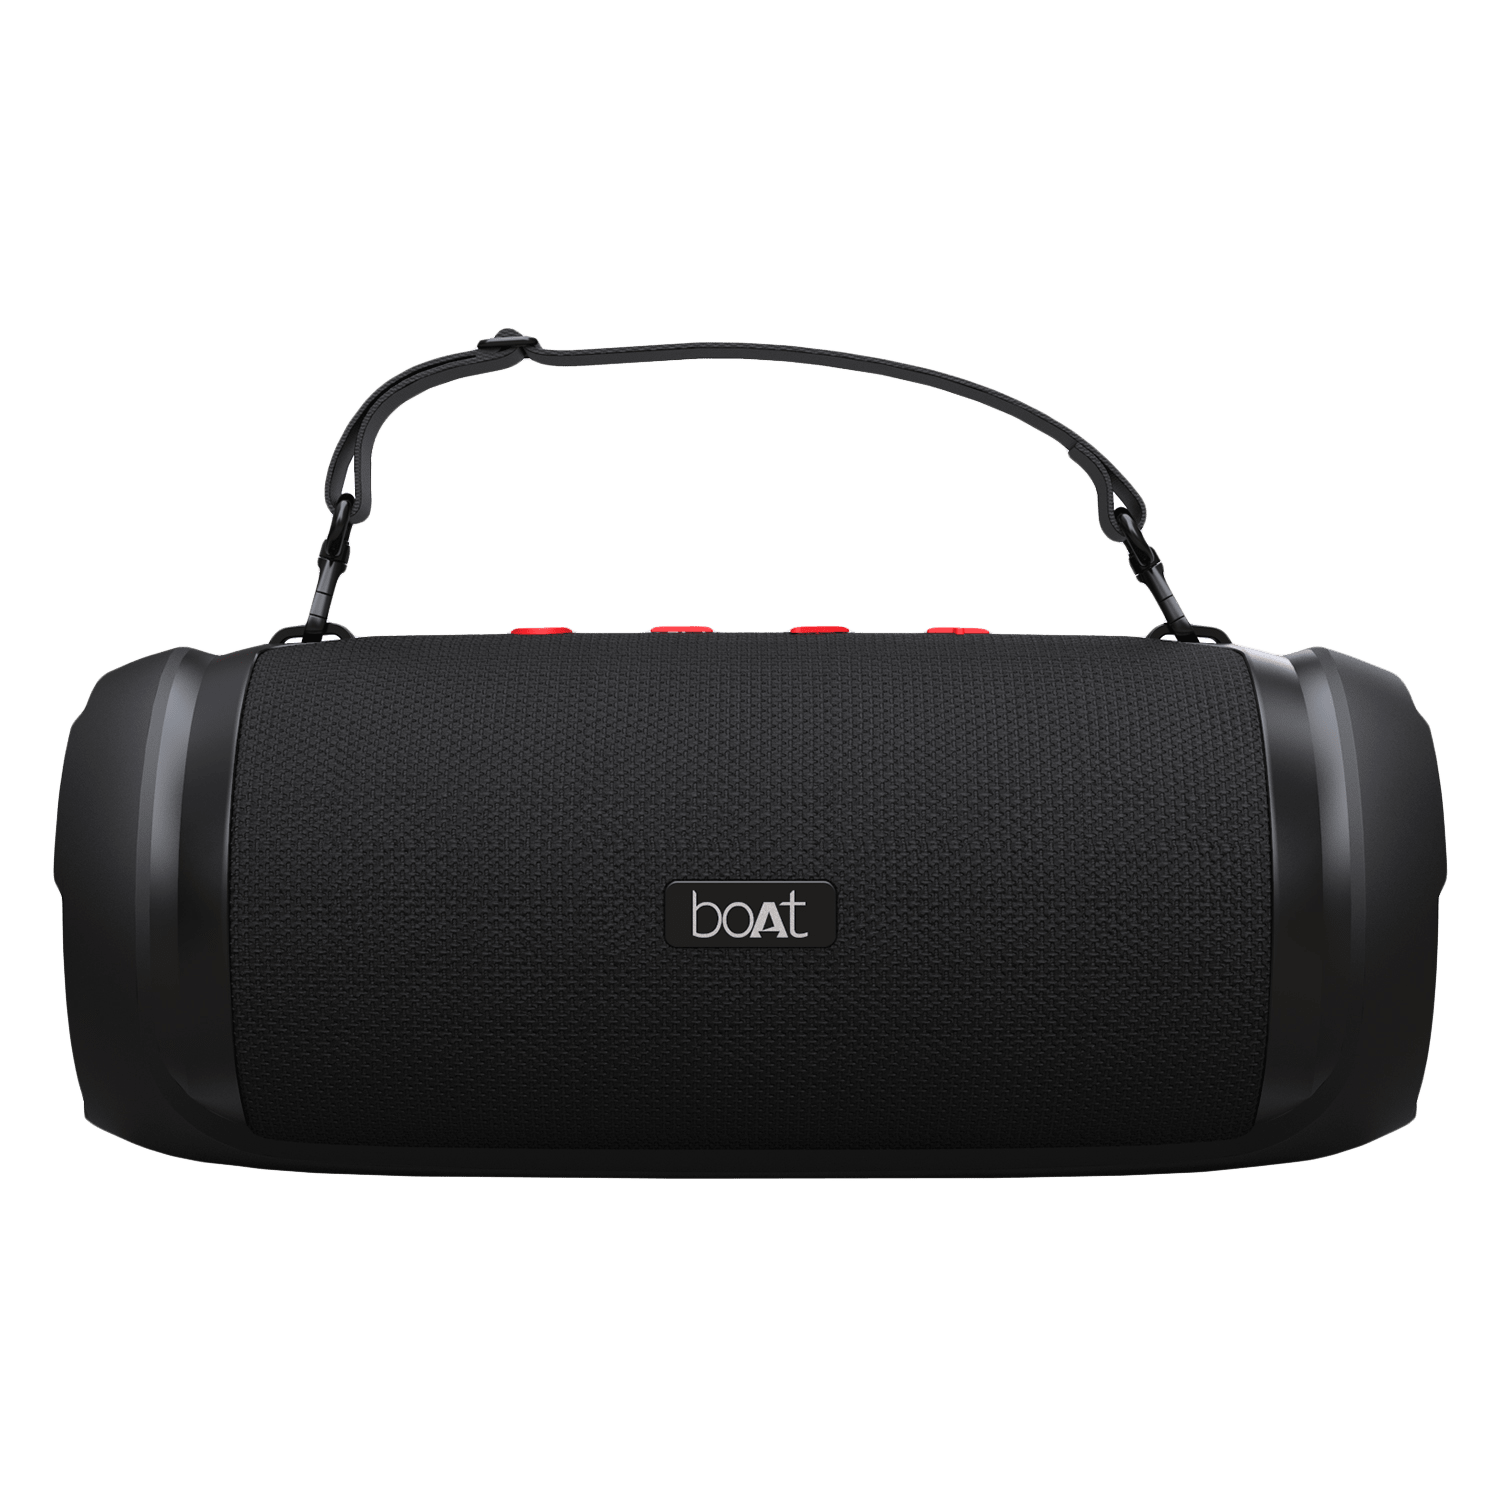 boAt Stone 1508 40 Watts Portable Bluetooth Speaker (Water Resistant, Active Black)